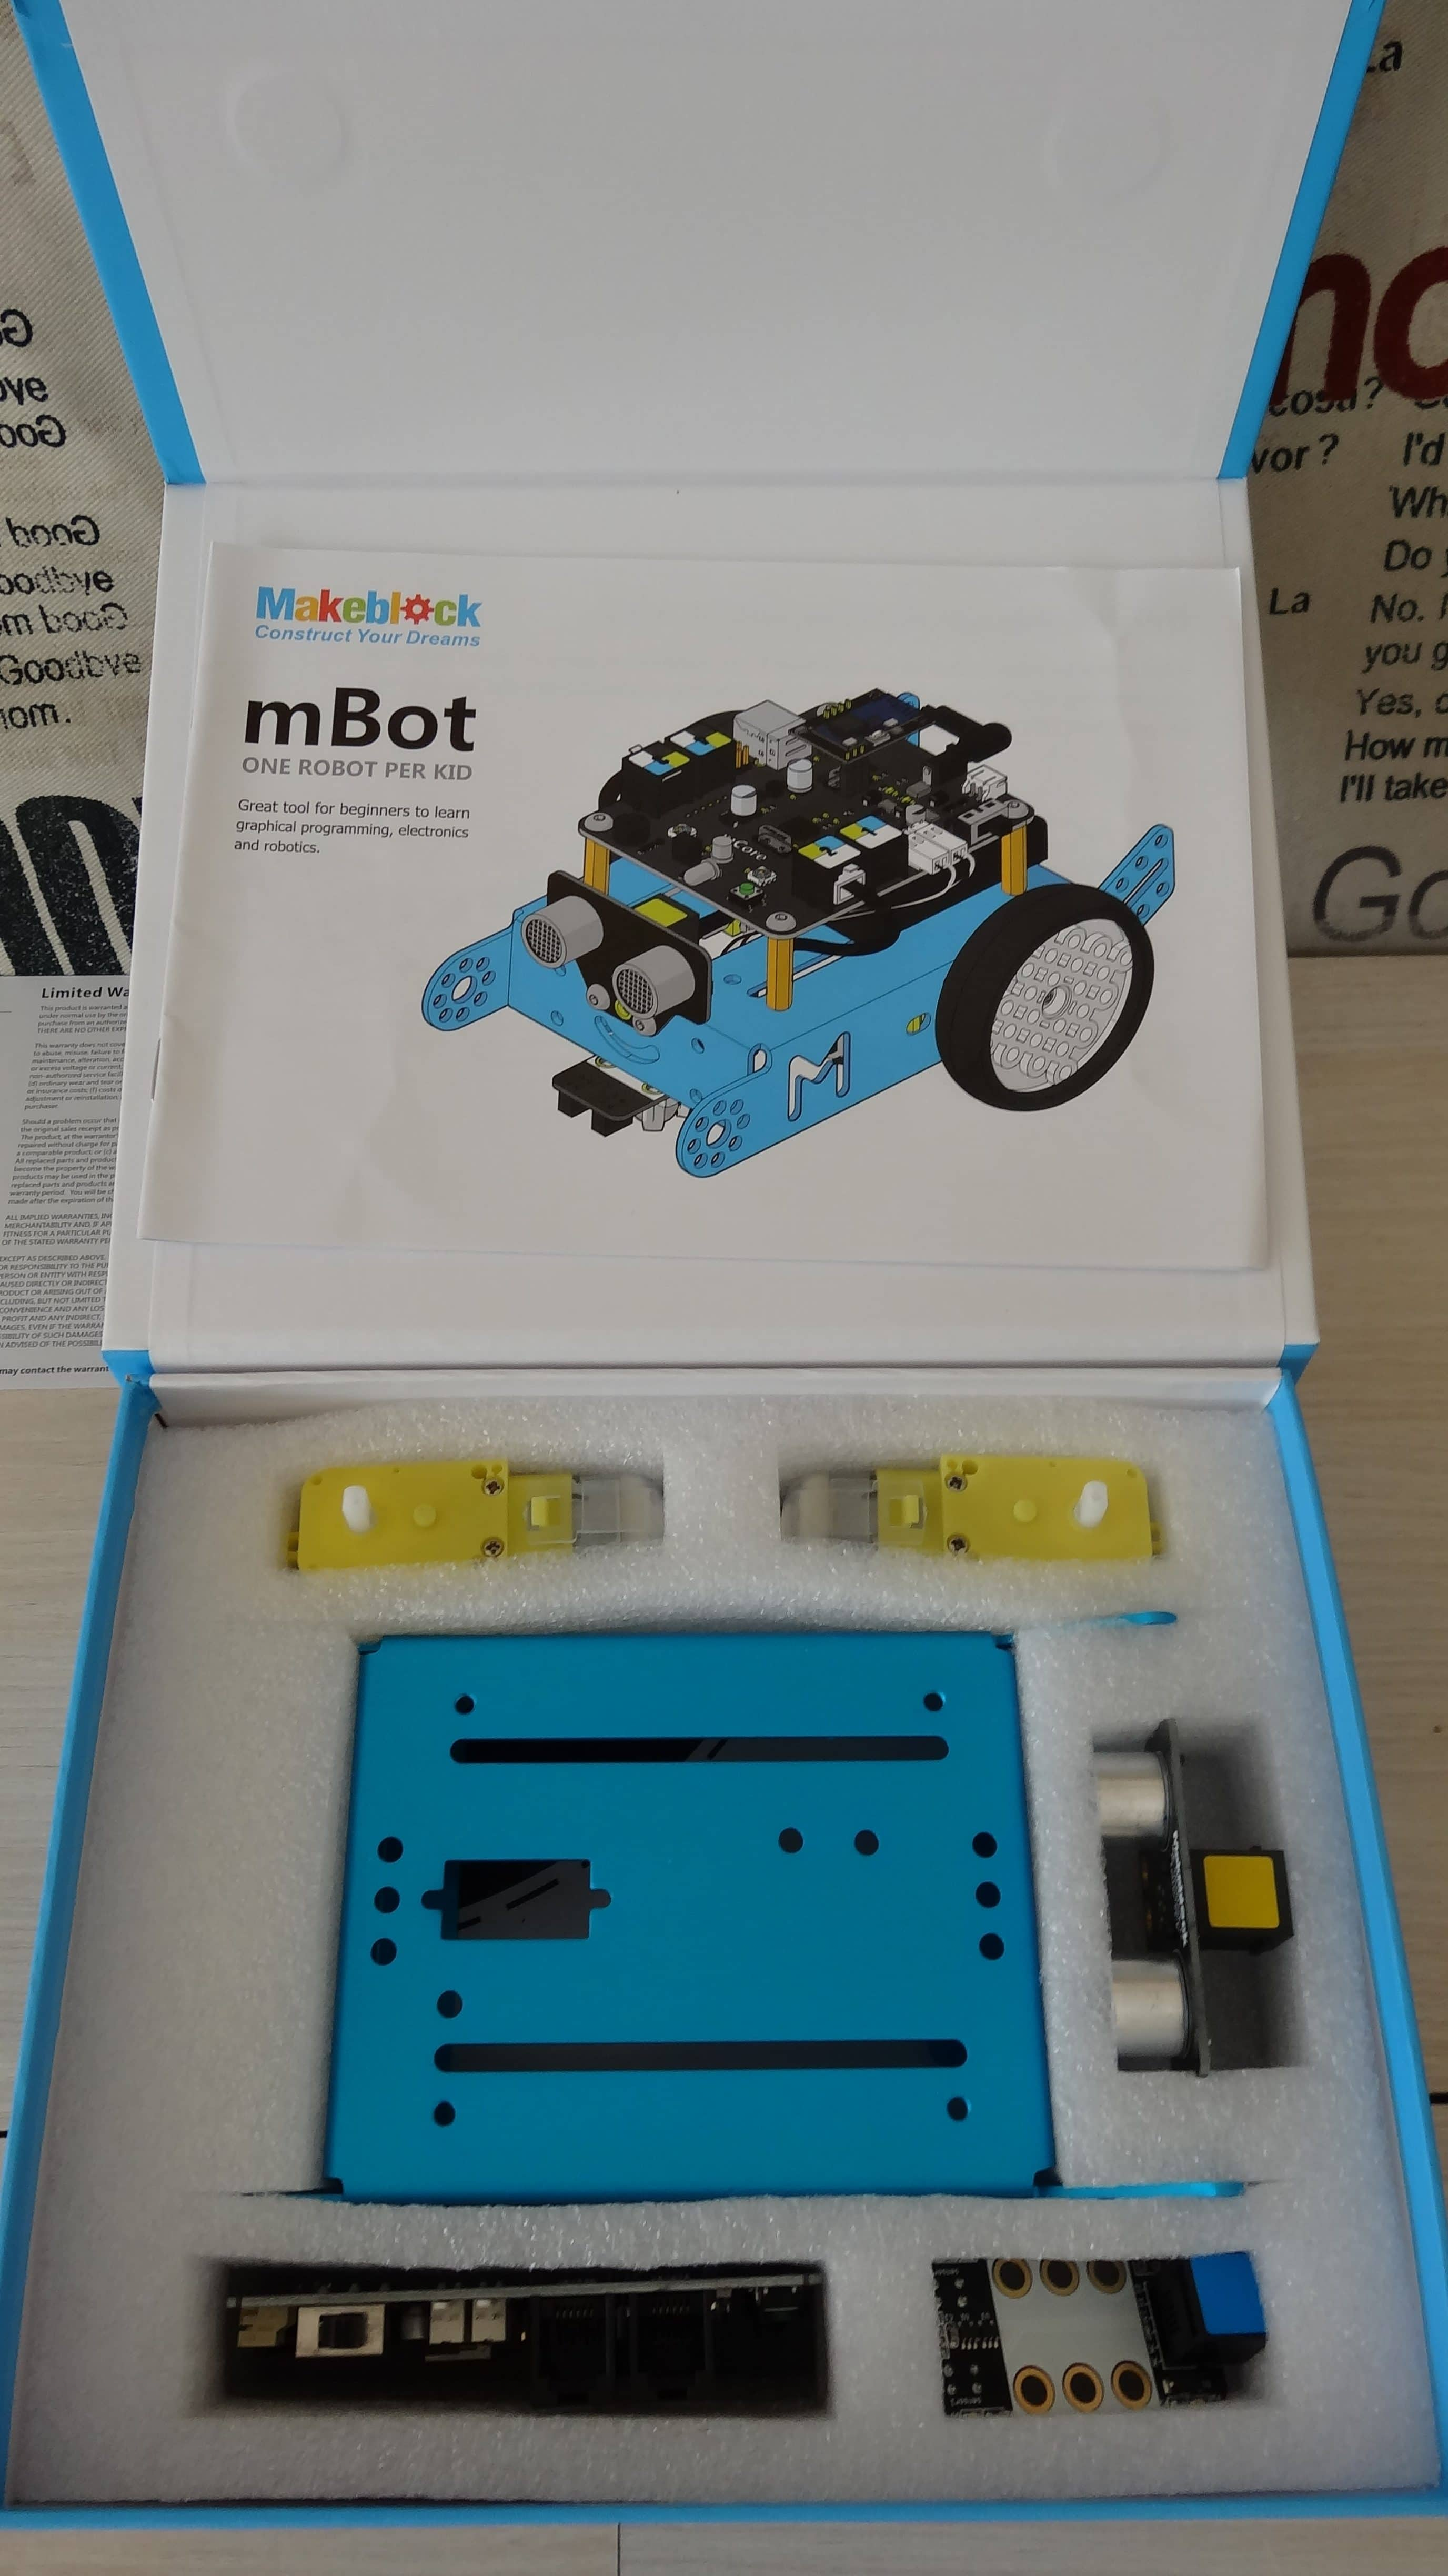 mbot-blue-un-robot-educatif-et-programmable-en-version-2-4-g-tres-interessant-legaragedupc-fr-2